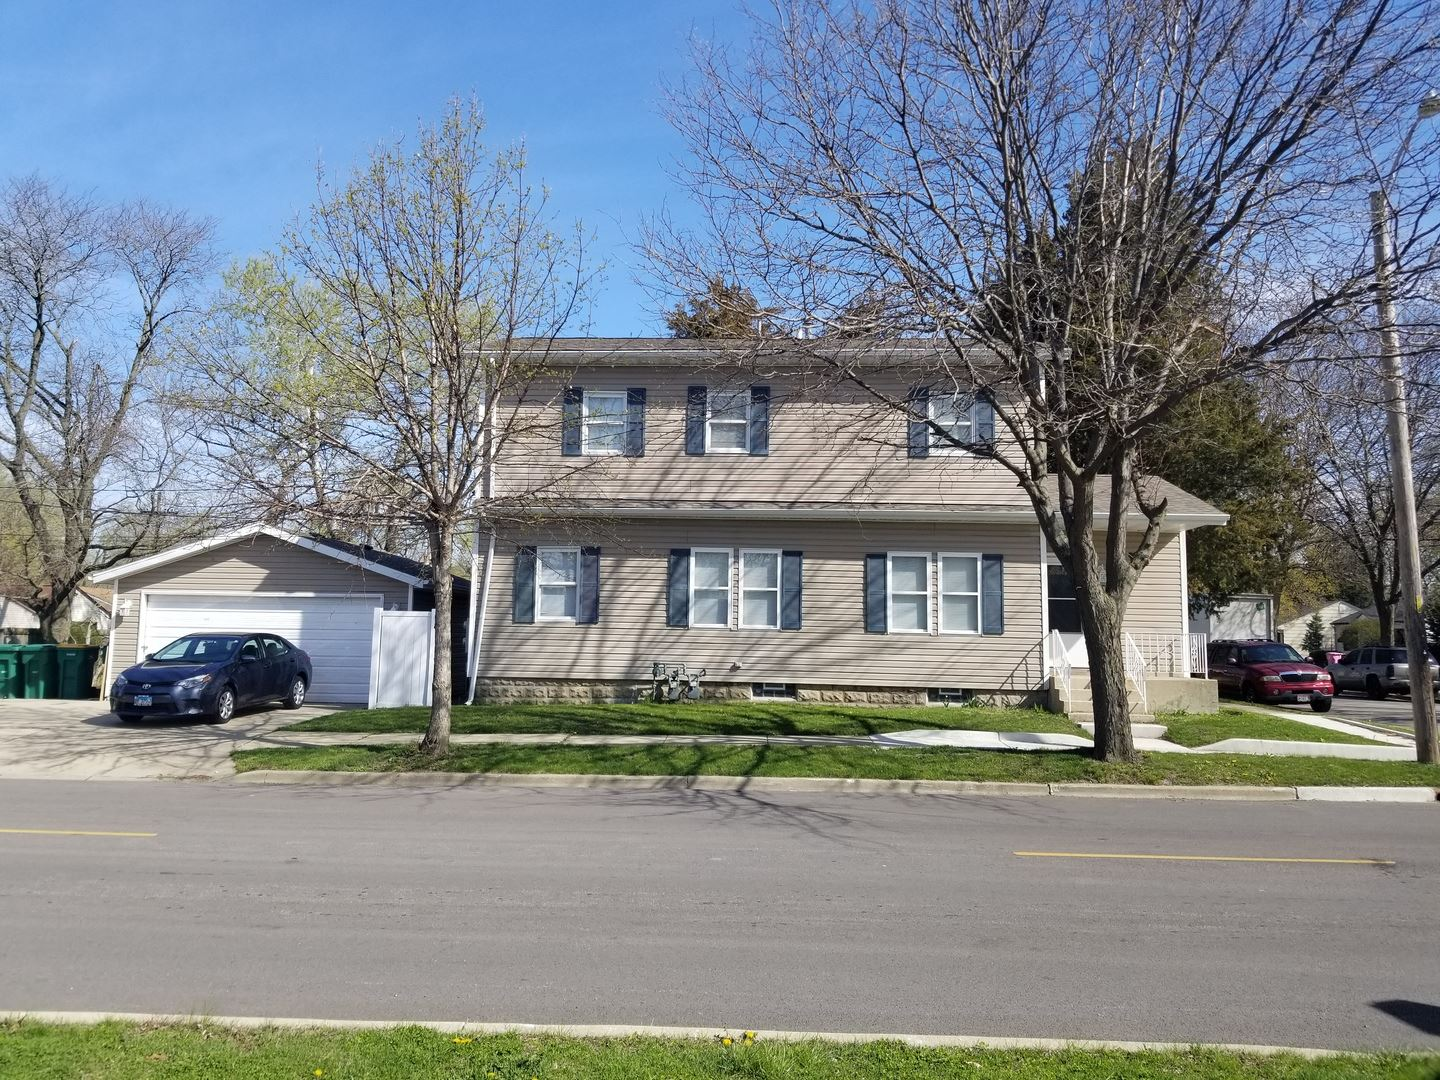 Photo of 1151 Morgan Street, Joliet, IL 60436 (MLS # 11056971)